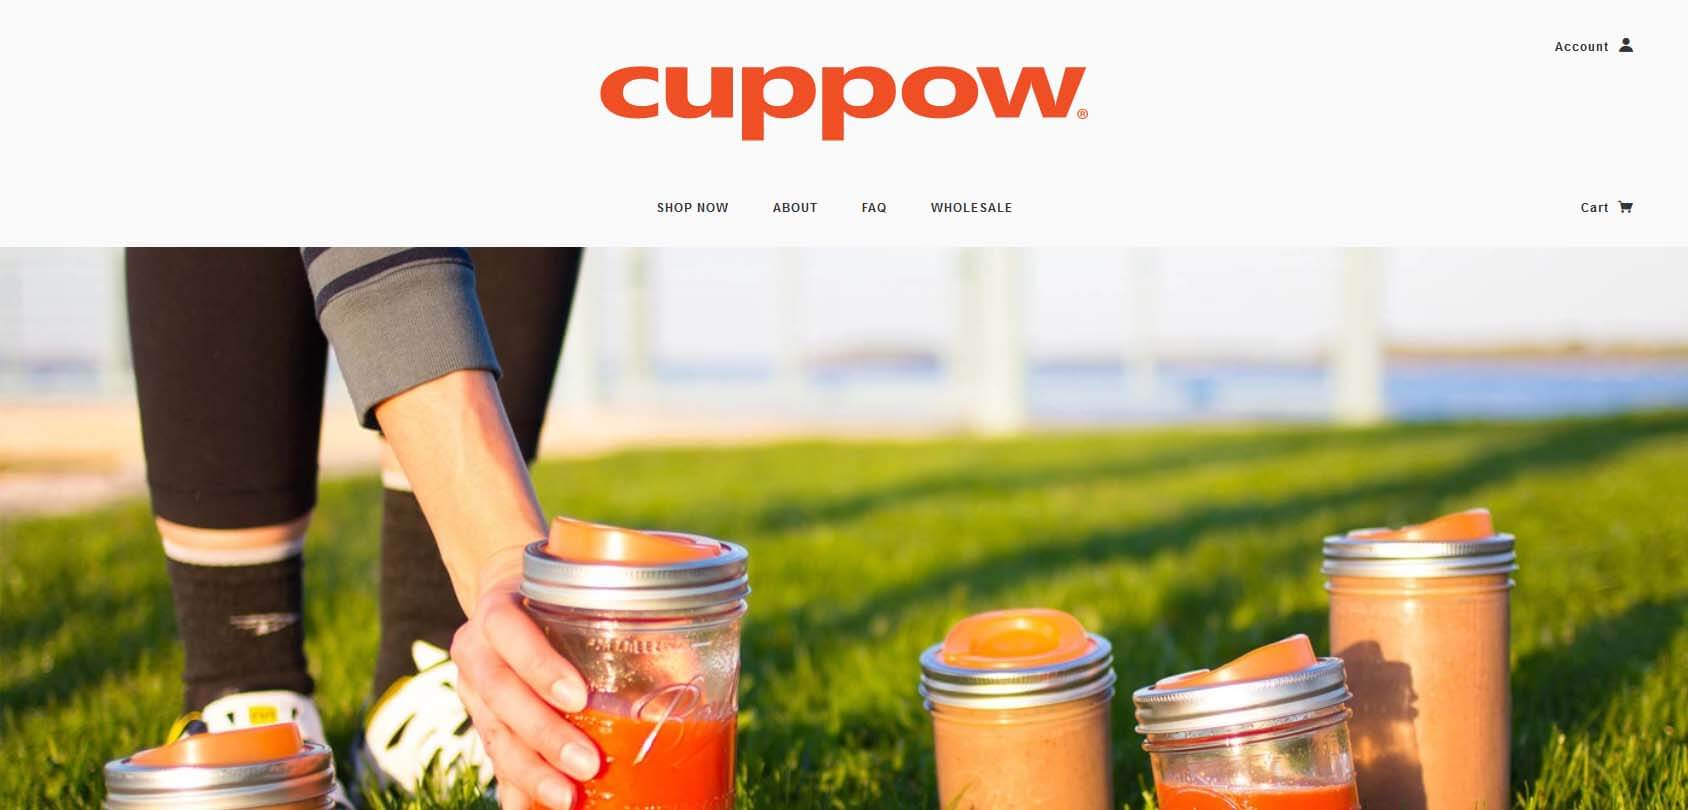 Cuppow homepage